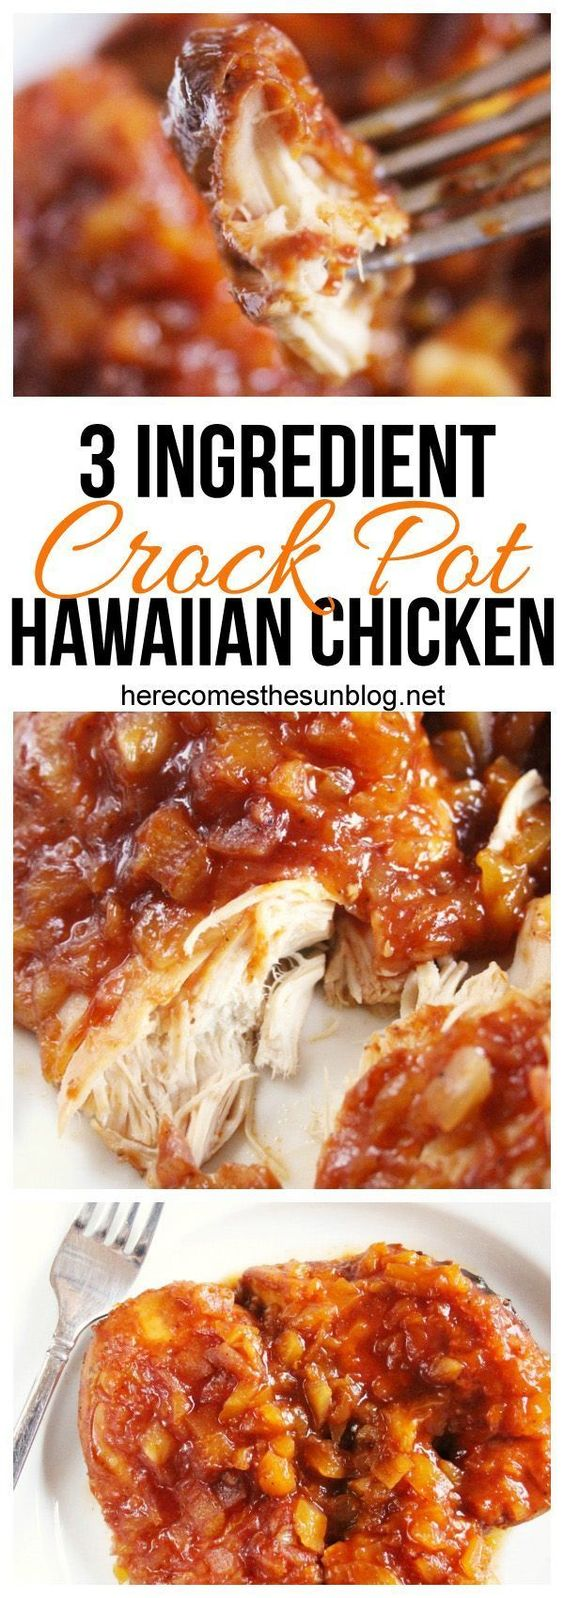 This Crock Pot Hawaiian Chicken recipe has only 3 ingredients and is super easy to make.